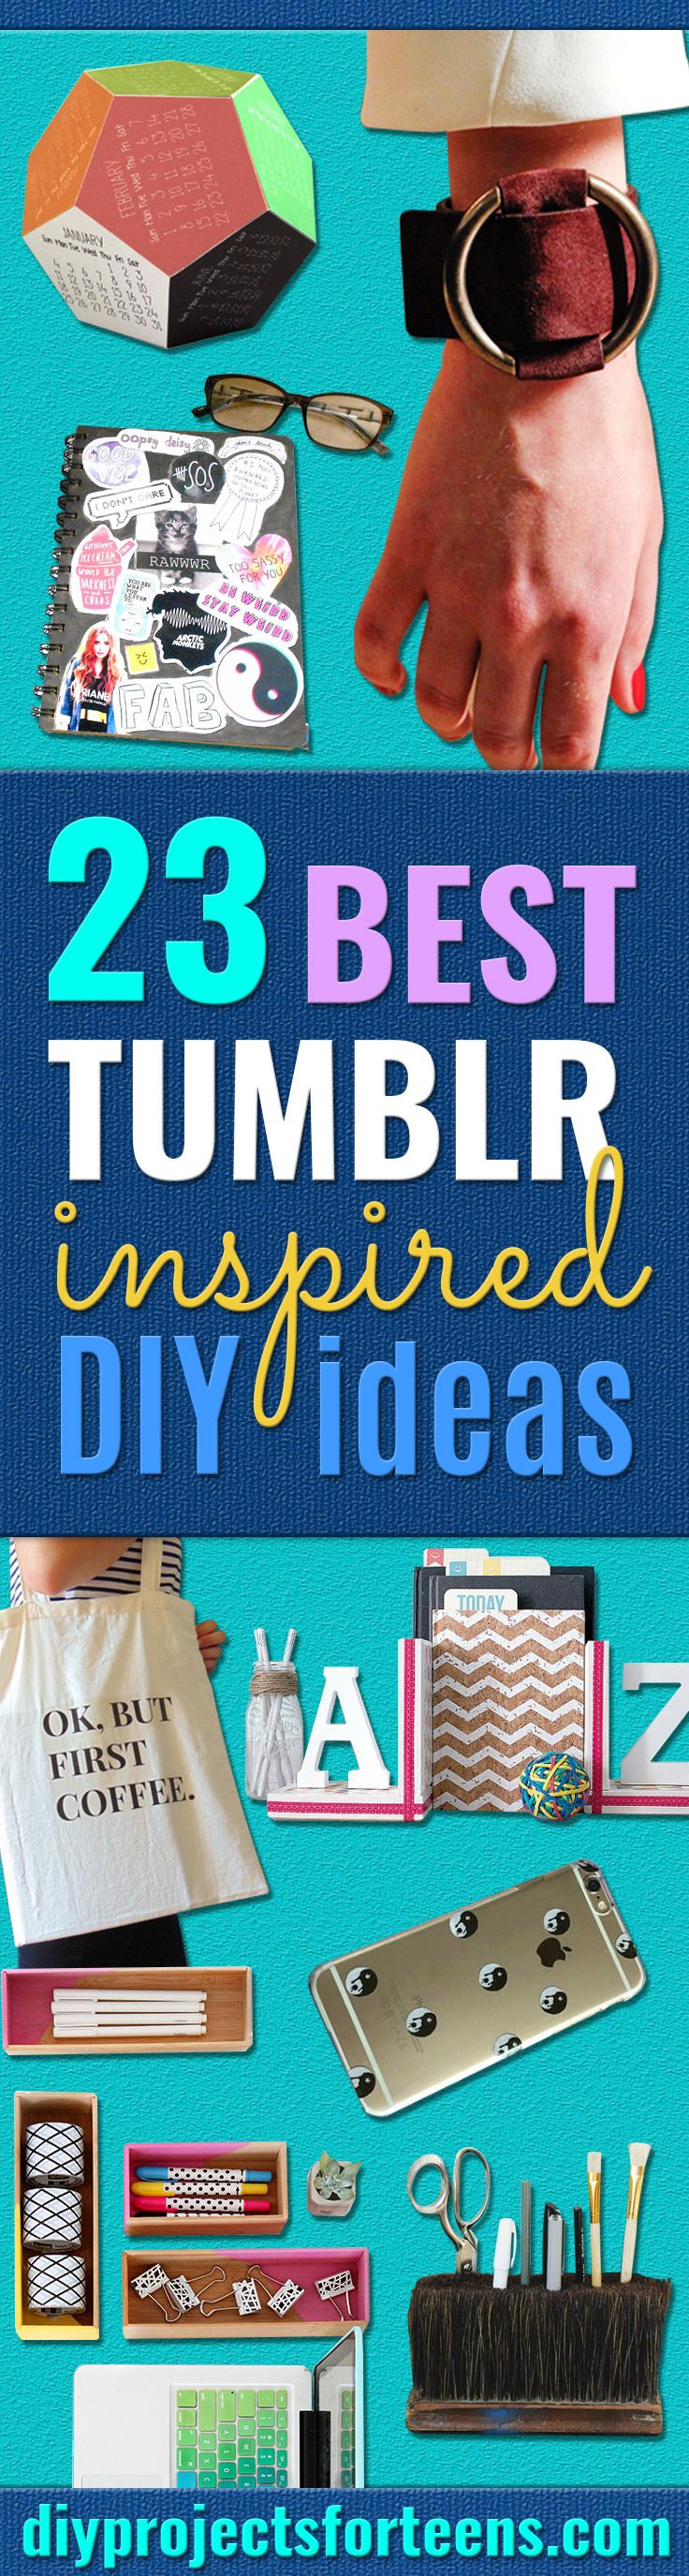 Best DIY Ideas from Tumblr Crafts